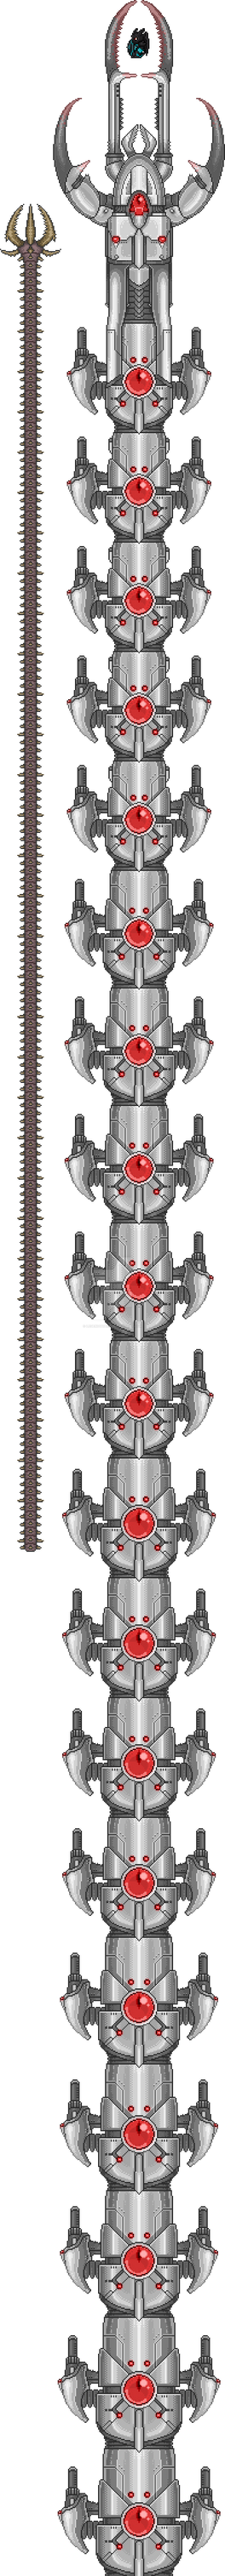 [Terraria] The True Destroyer (first 20 segments) by legendguard